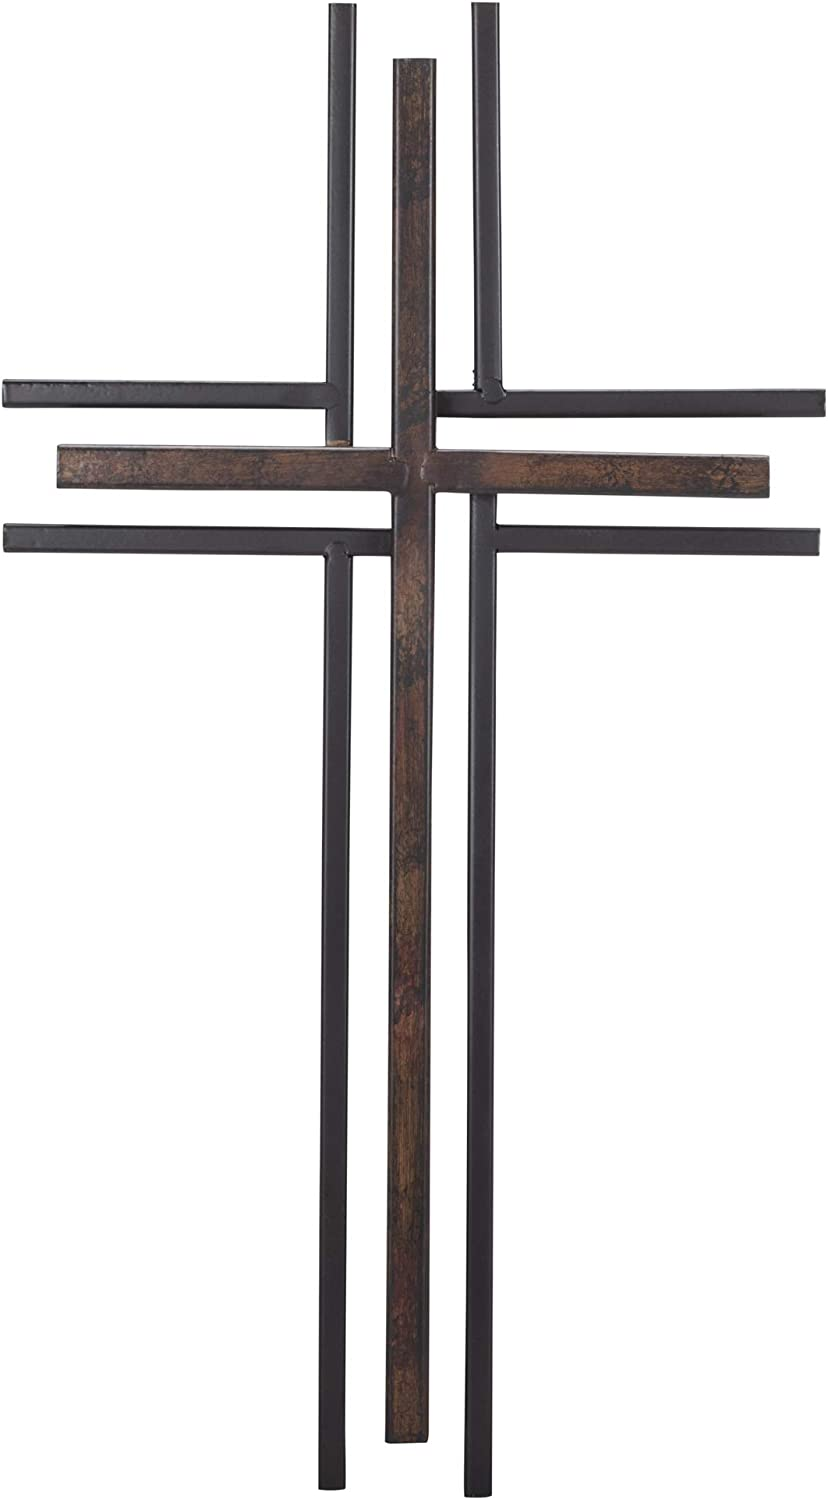 Dicksons Double Layer 16 inch Decorative Metal Wall Cross